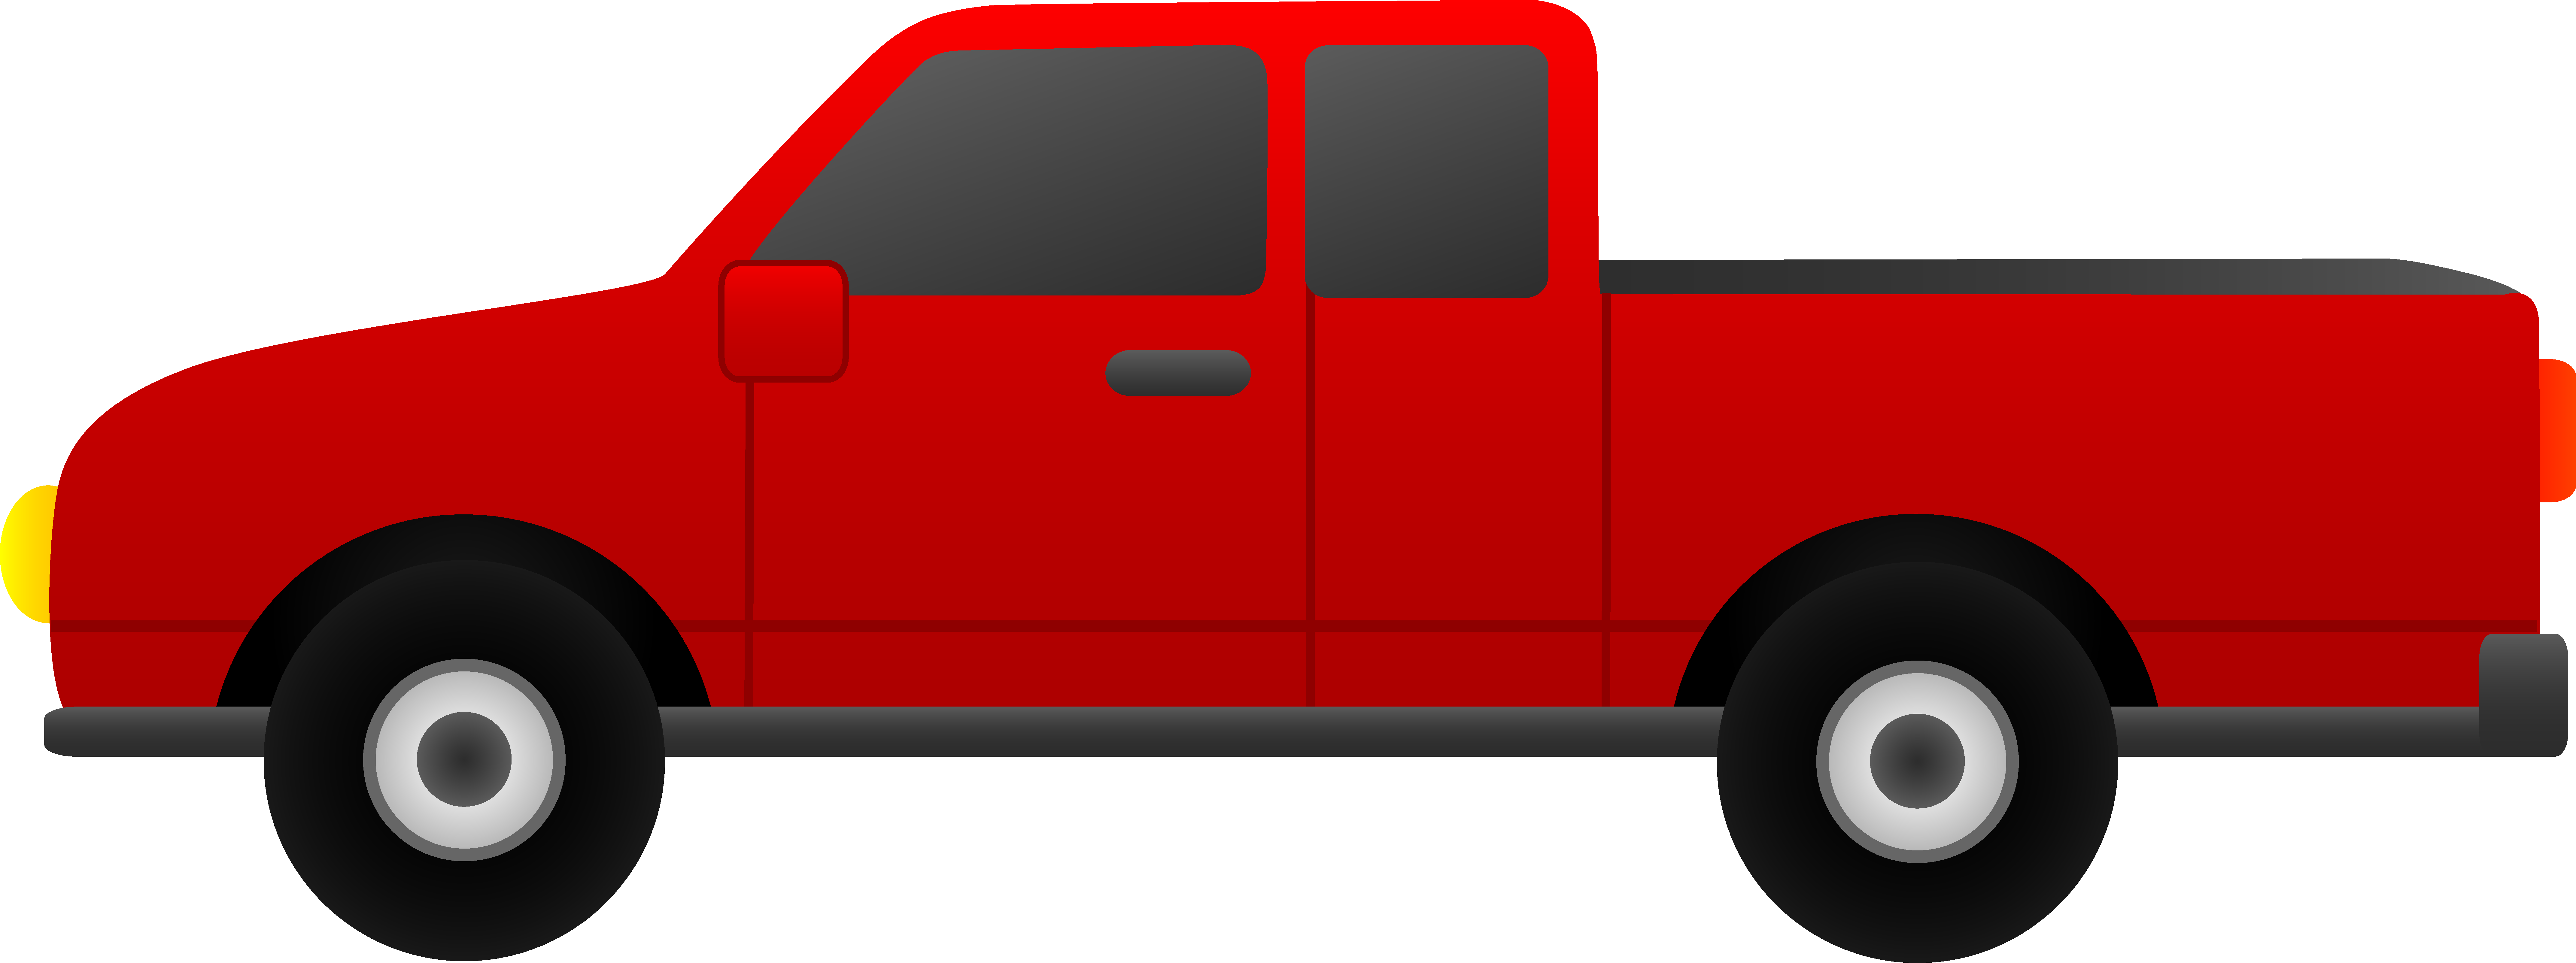 920 Pickup Truck free clipart.